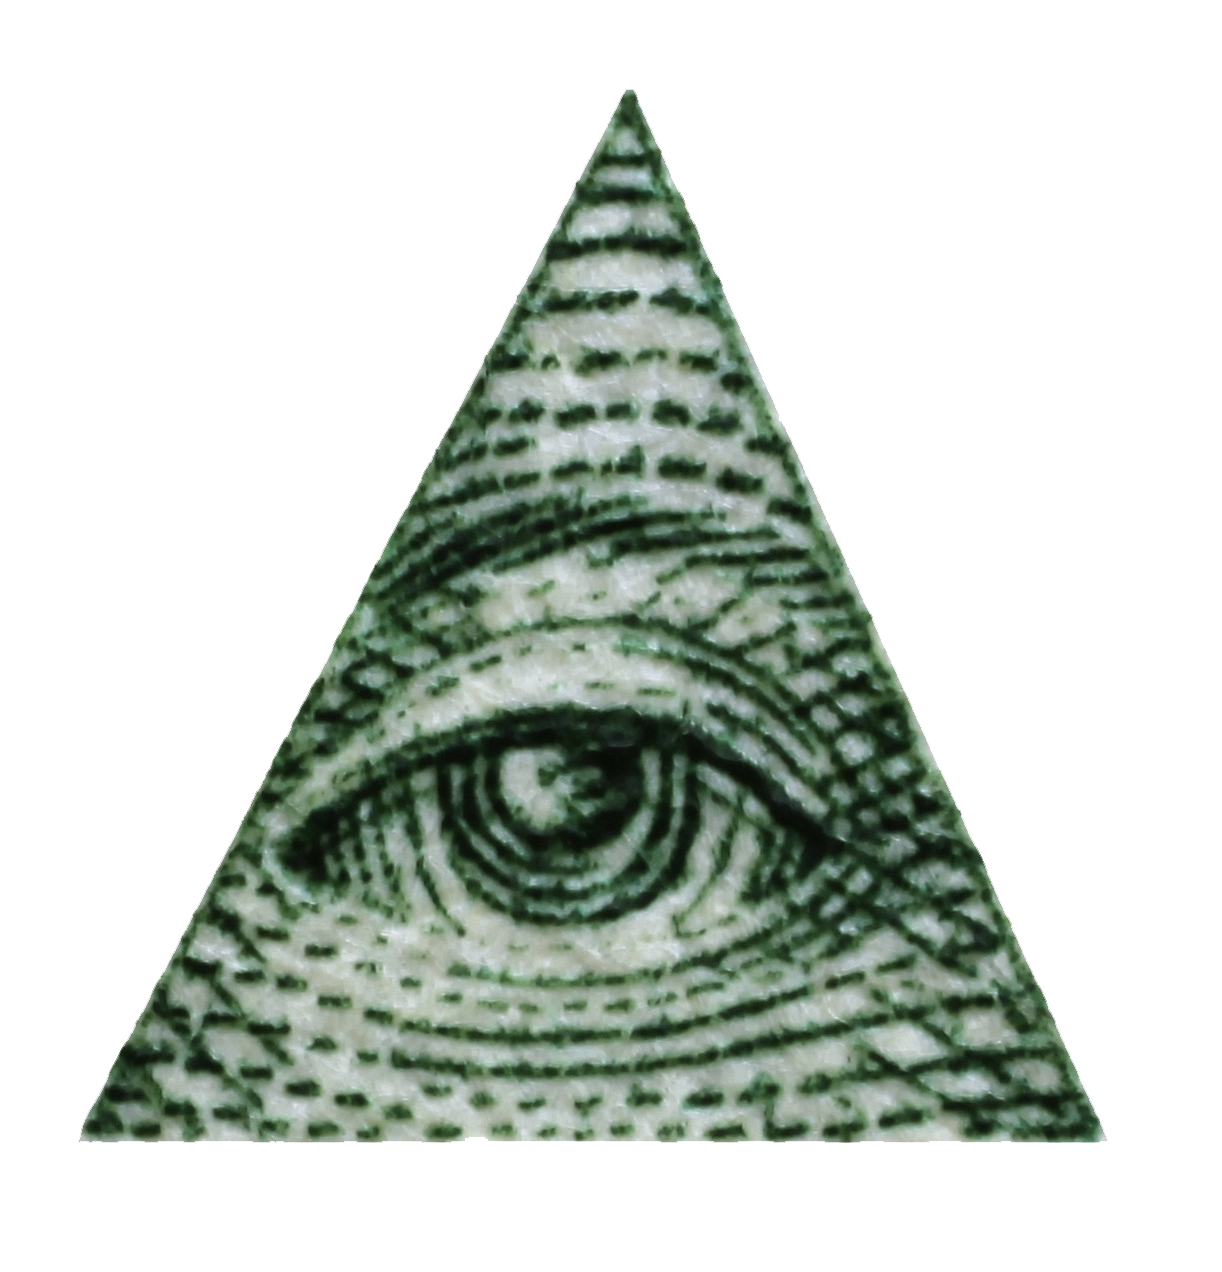 [Image: Illuminati_triangle_eye.png]